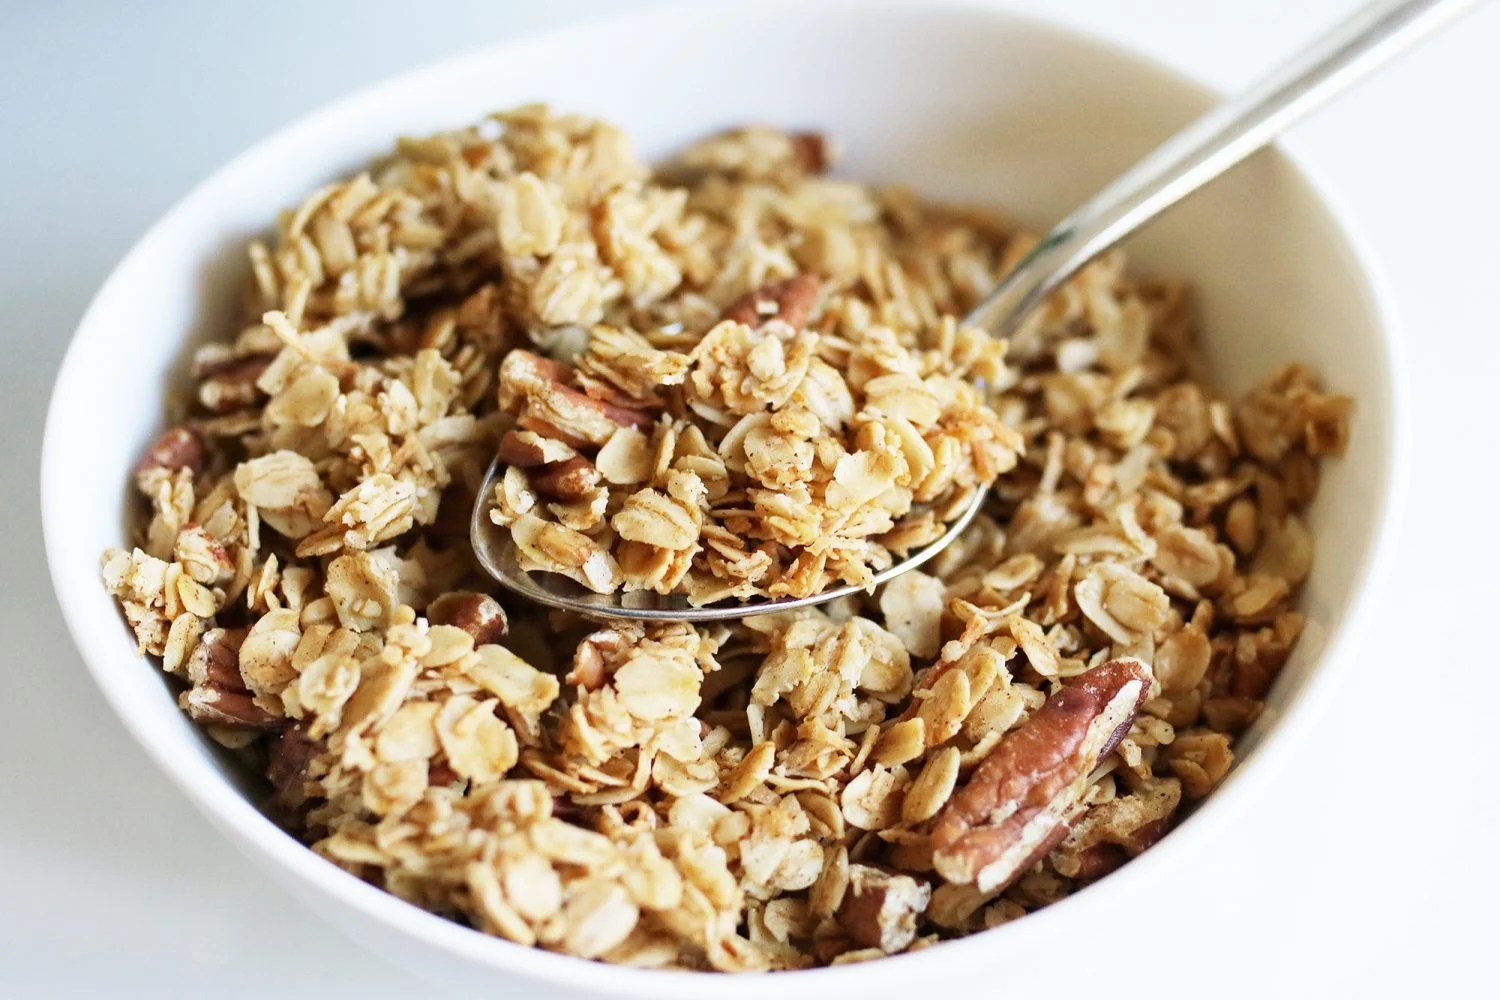 Easy vegan granola recipe the super mom life vegan granola granola recipe vegan granola recipe how to make granola healthy ccuart Image collections